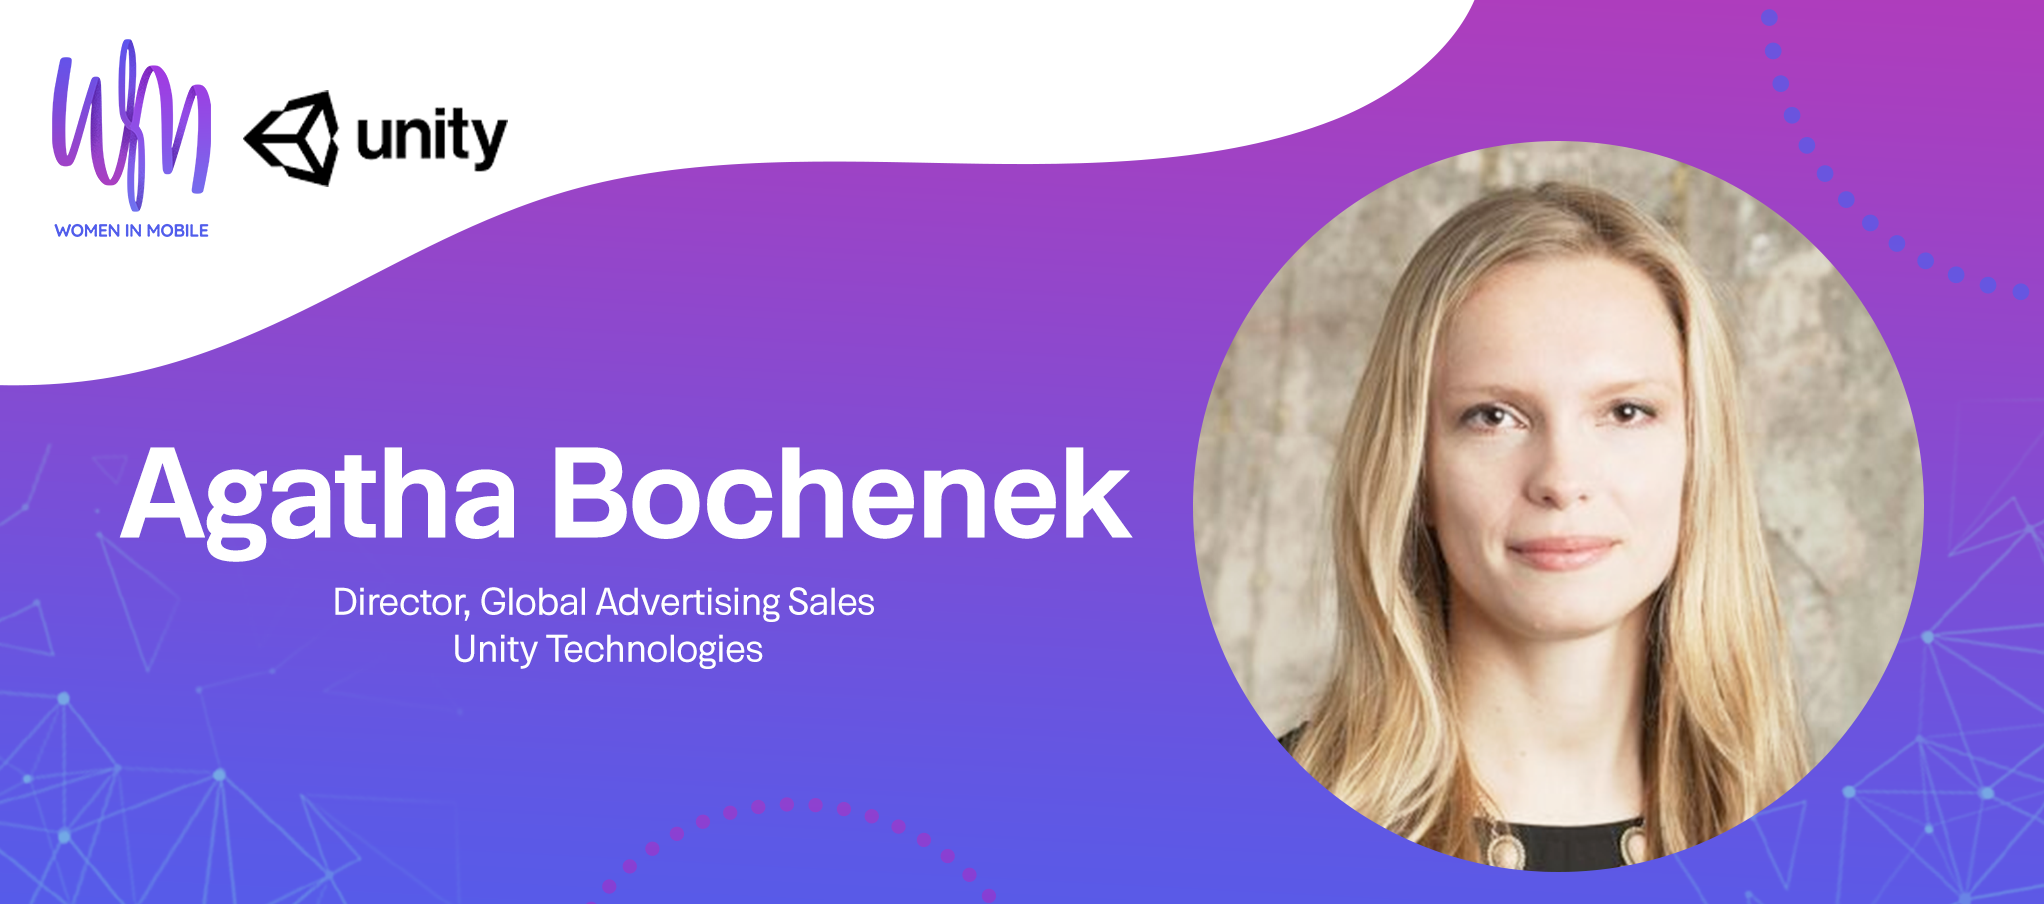 Agatha Bochenek Director, Global Advertising Sales, at Unity Technologies at Aarki's Women in Mobile series